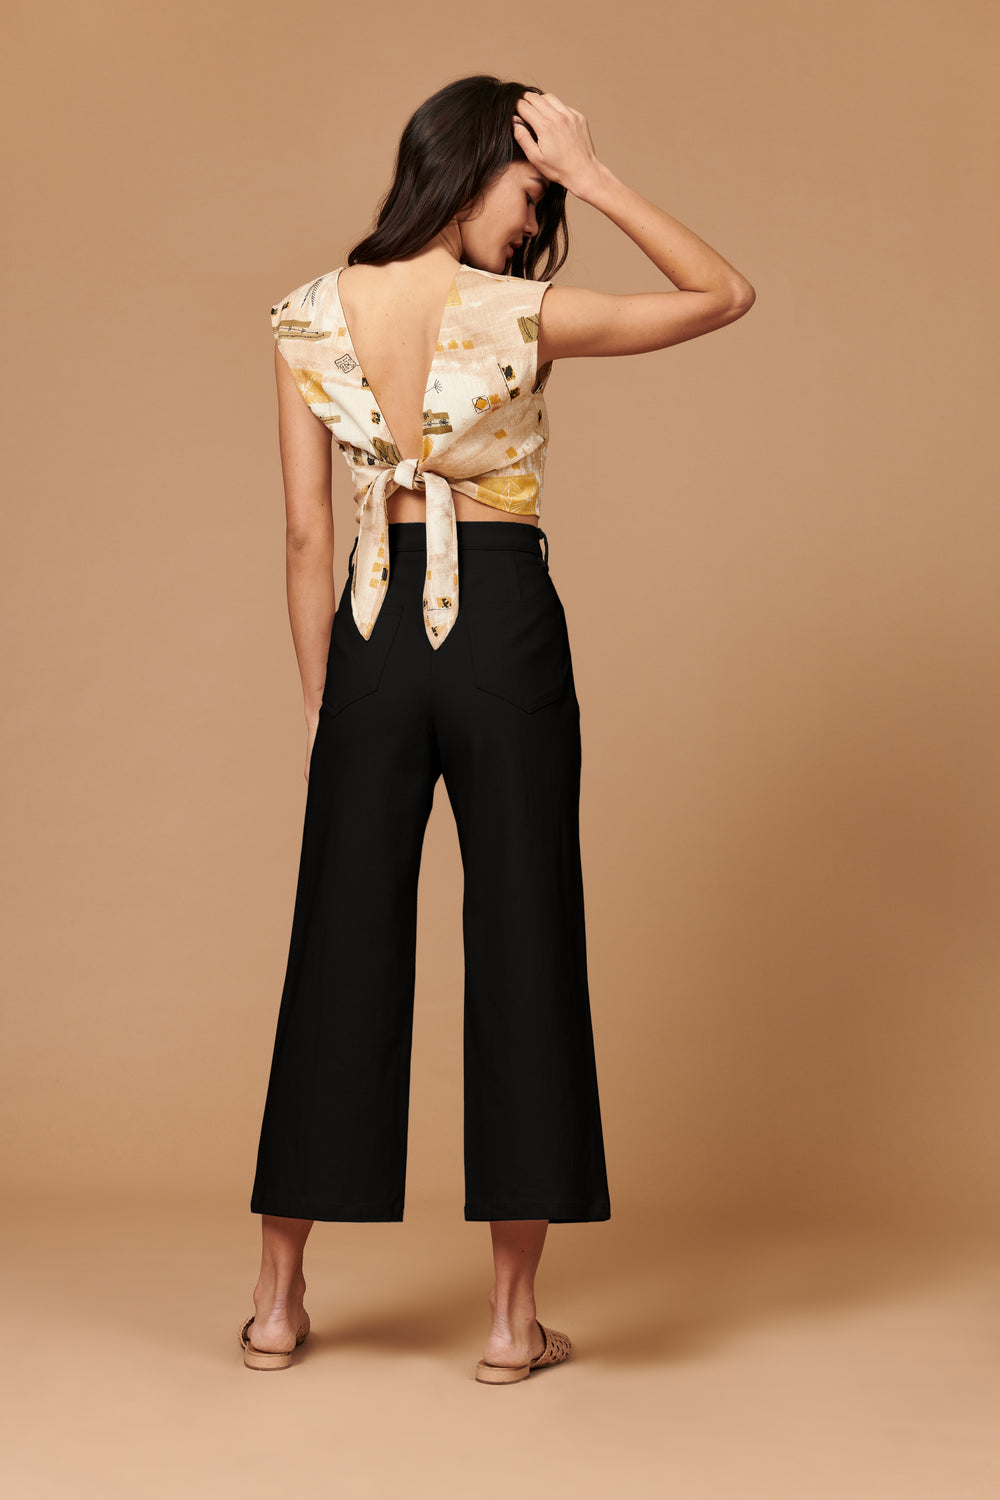 Flora Pant in Black - Whimsy & Row